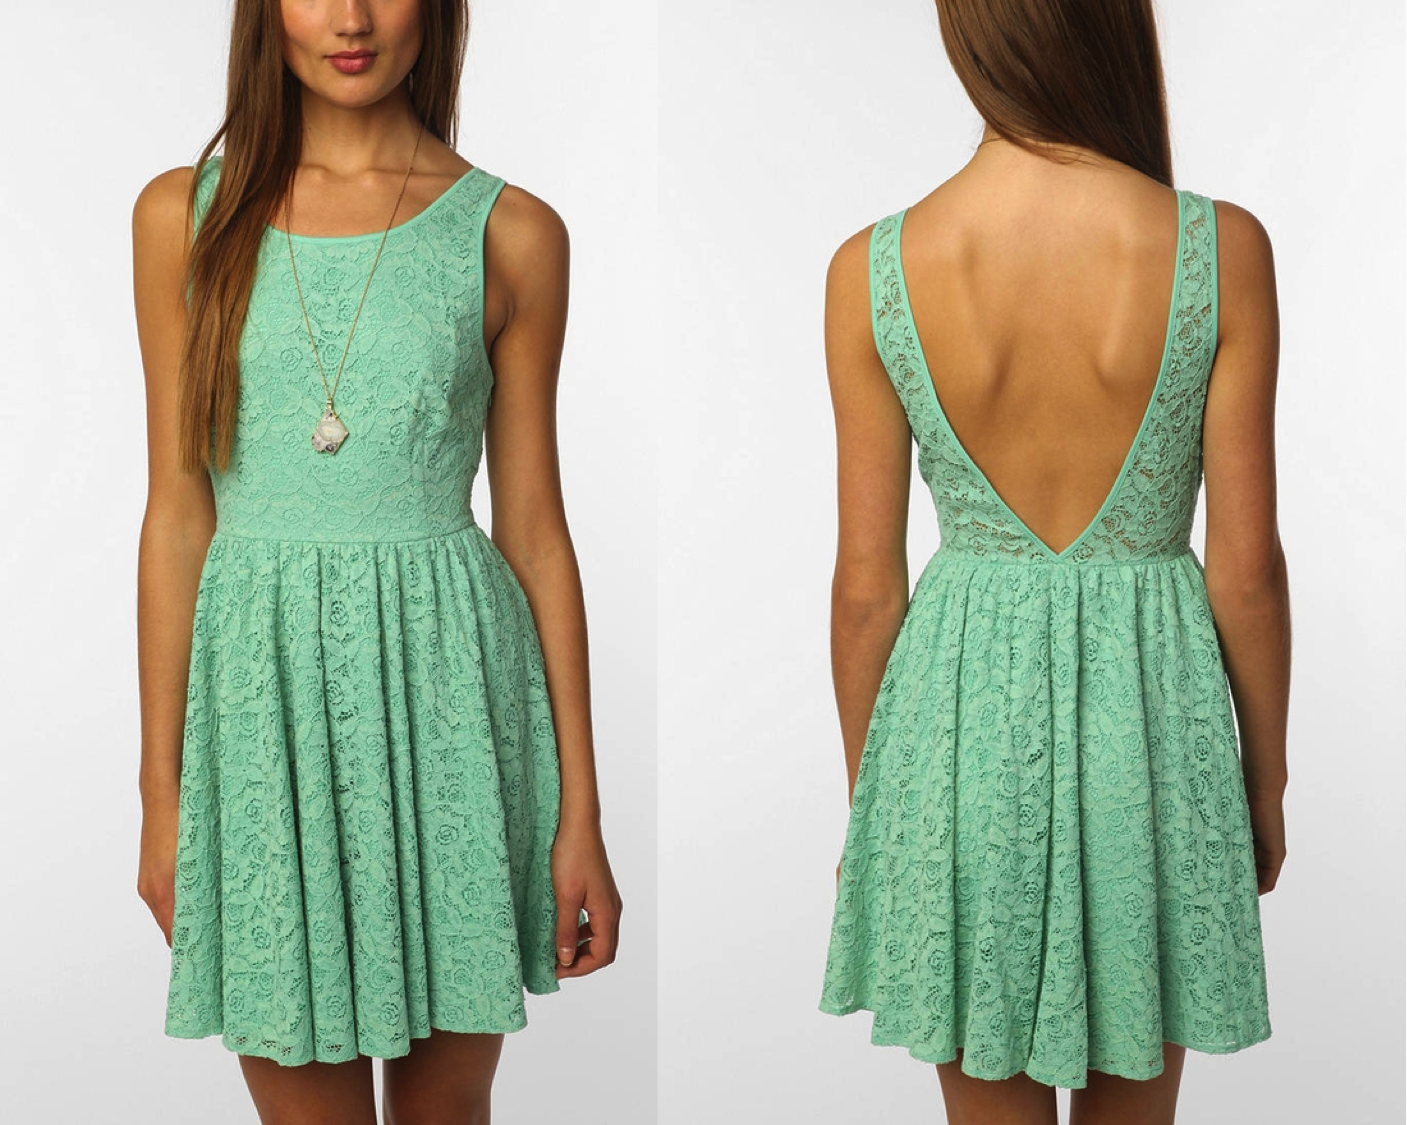 pins and needles dress- urban outfitters